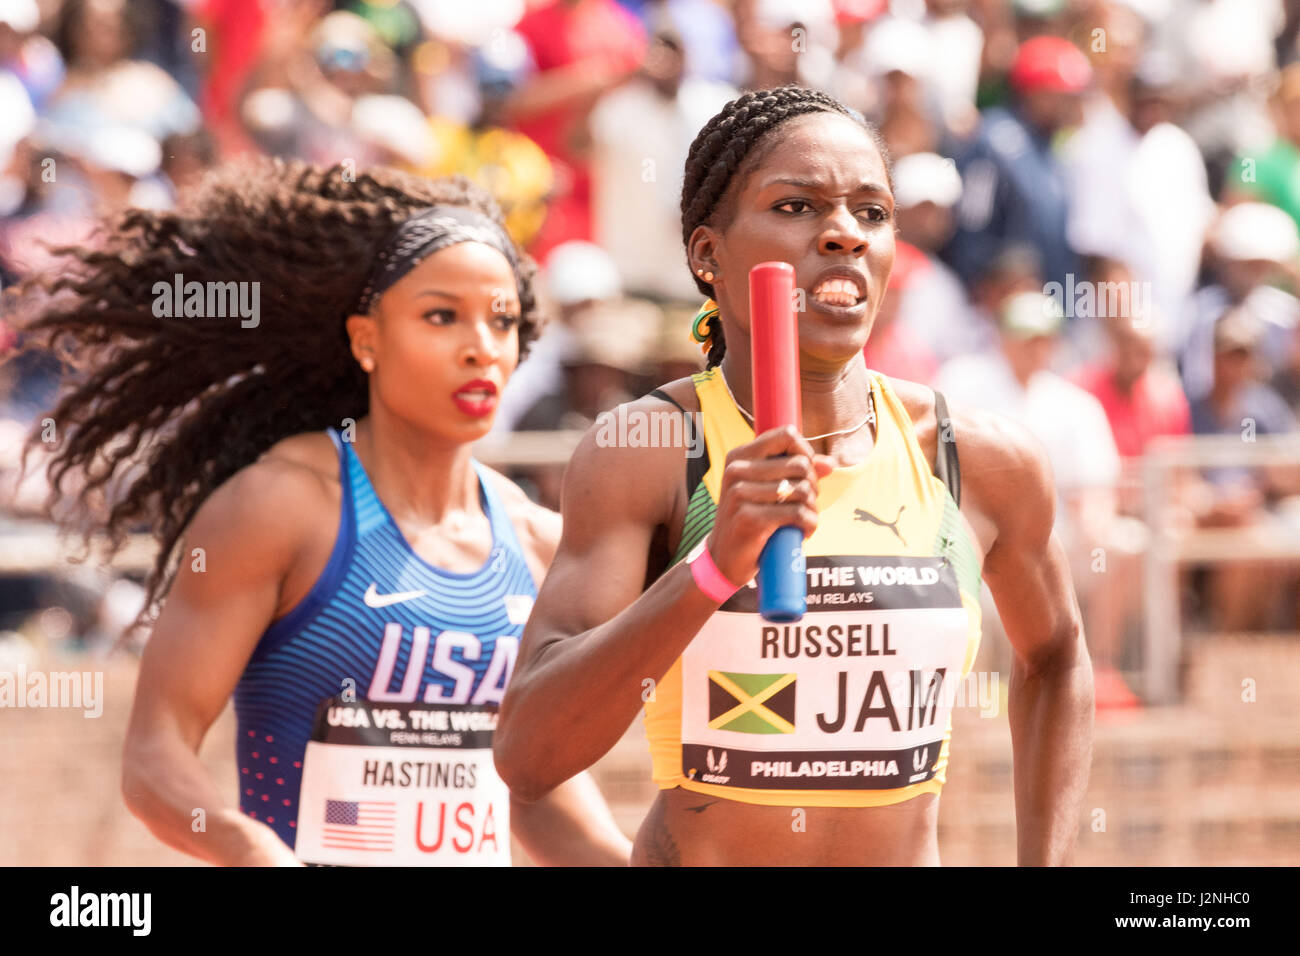 Philadelphia, Pennsylvania, USA. 29th Apr, 2017. NATASHA HASTINGS, of Team USA and JANIEVE RUSSELL of Jamaica competing - Stock Image